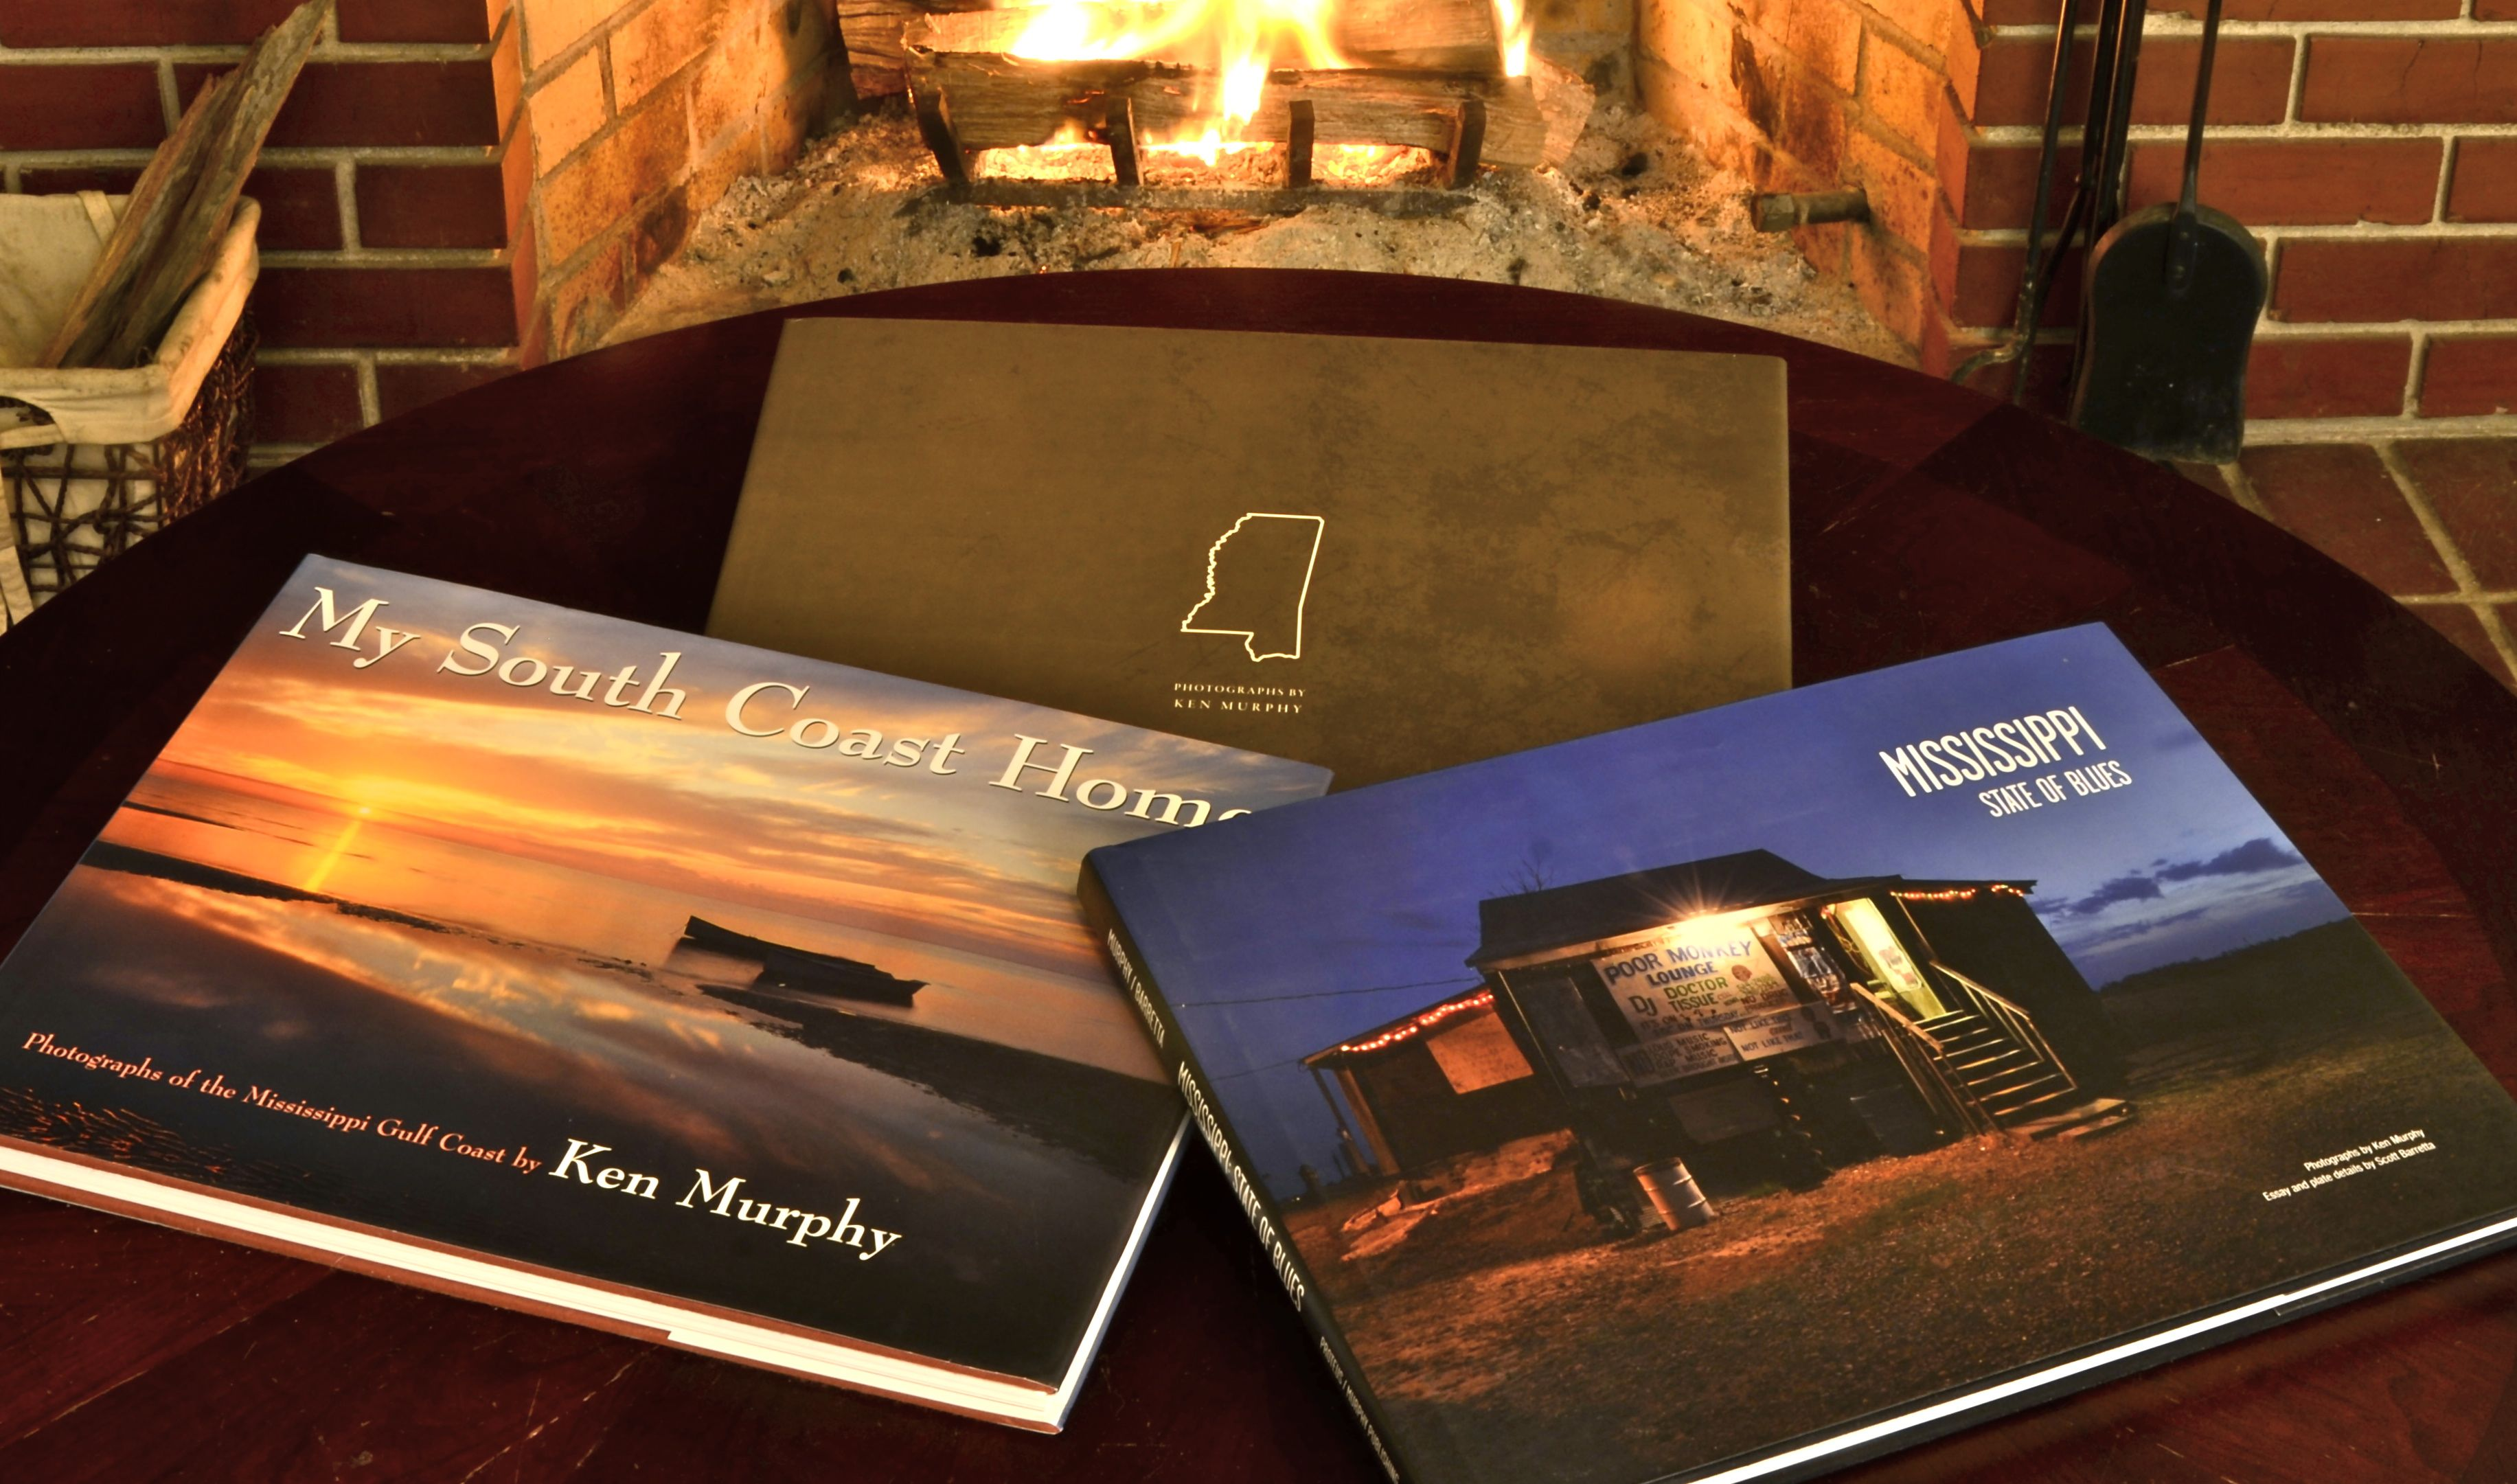 Books by Ken Murphy